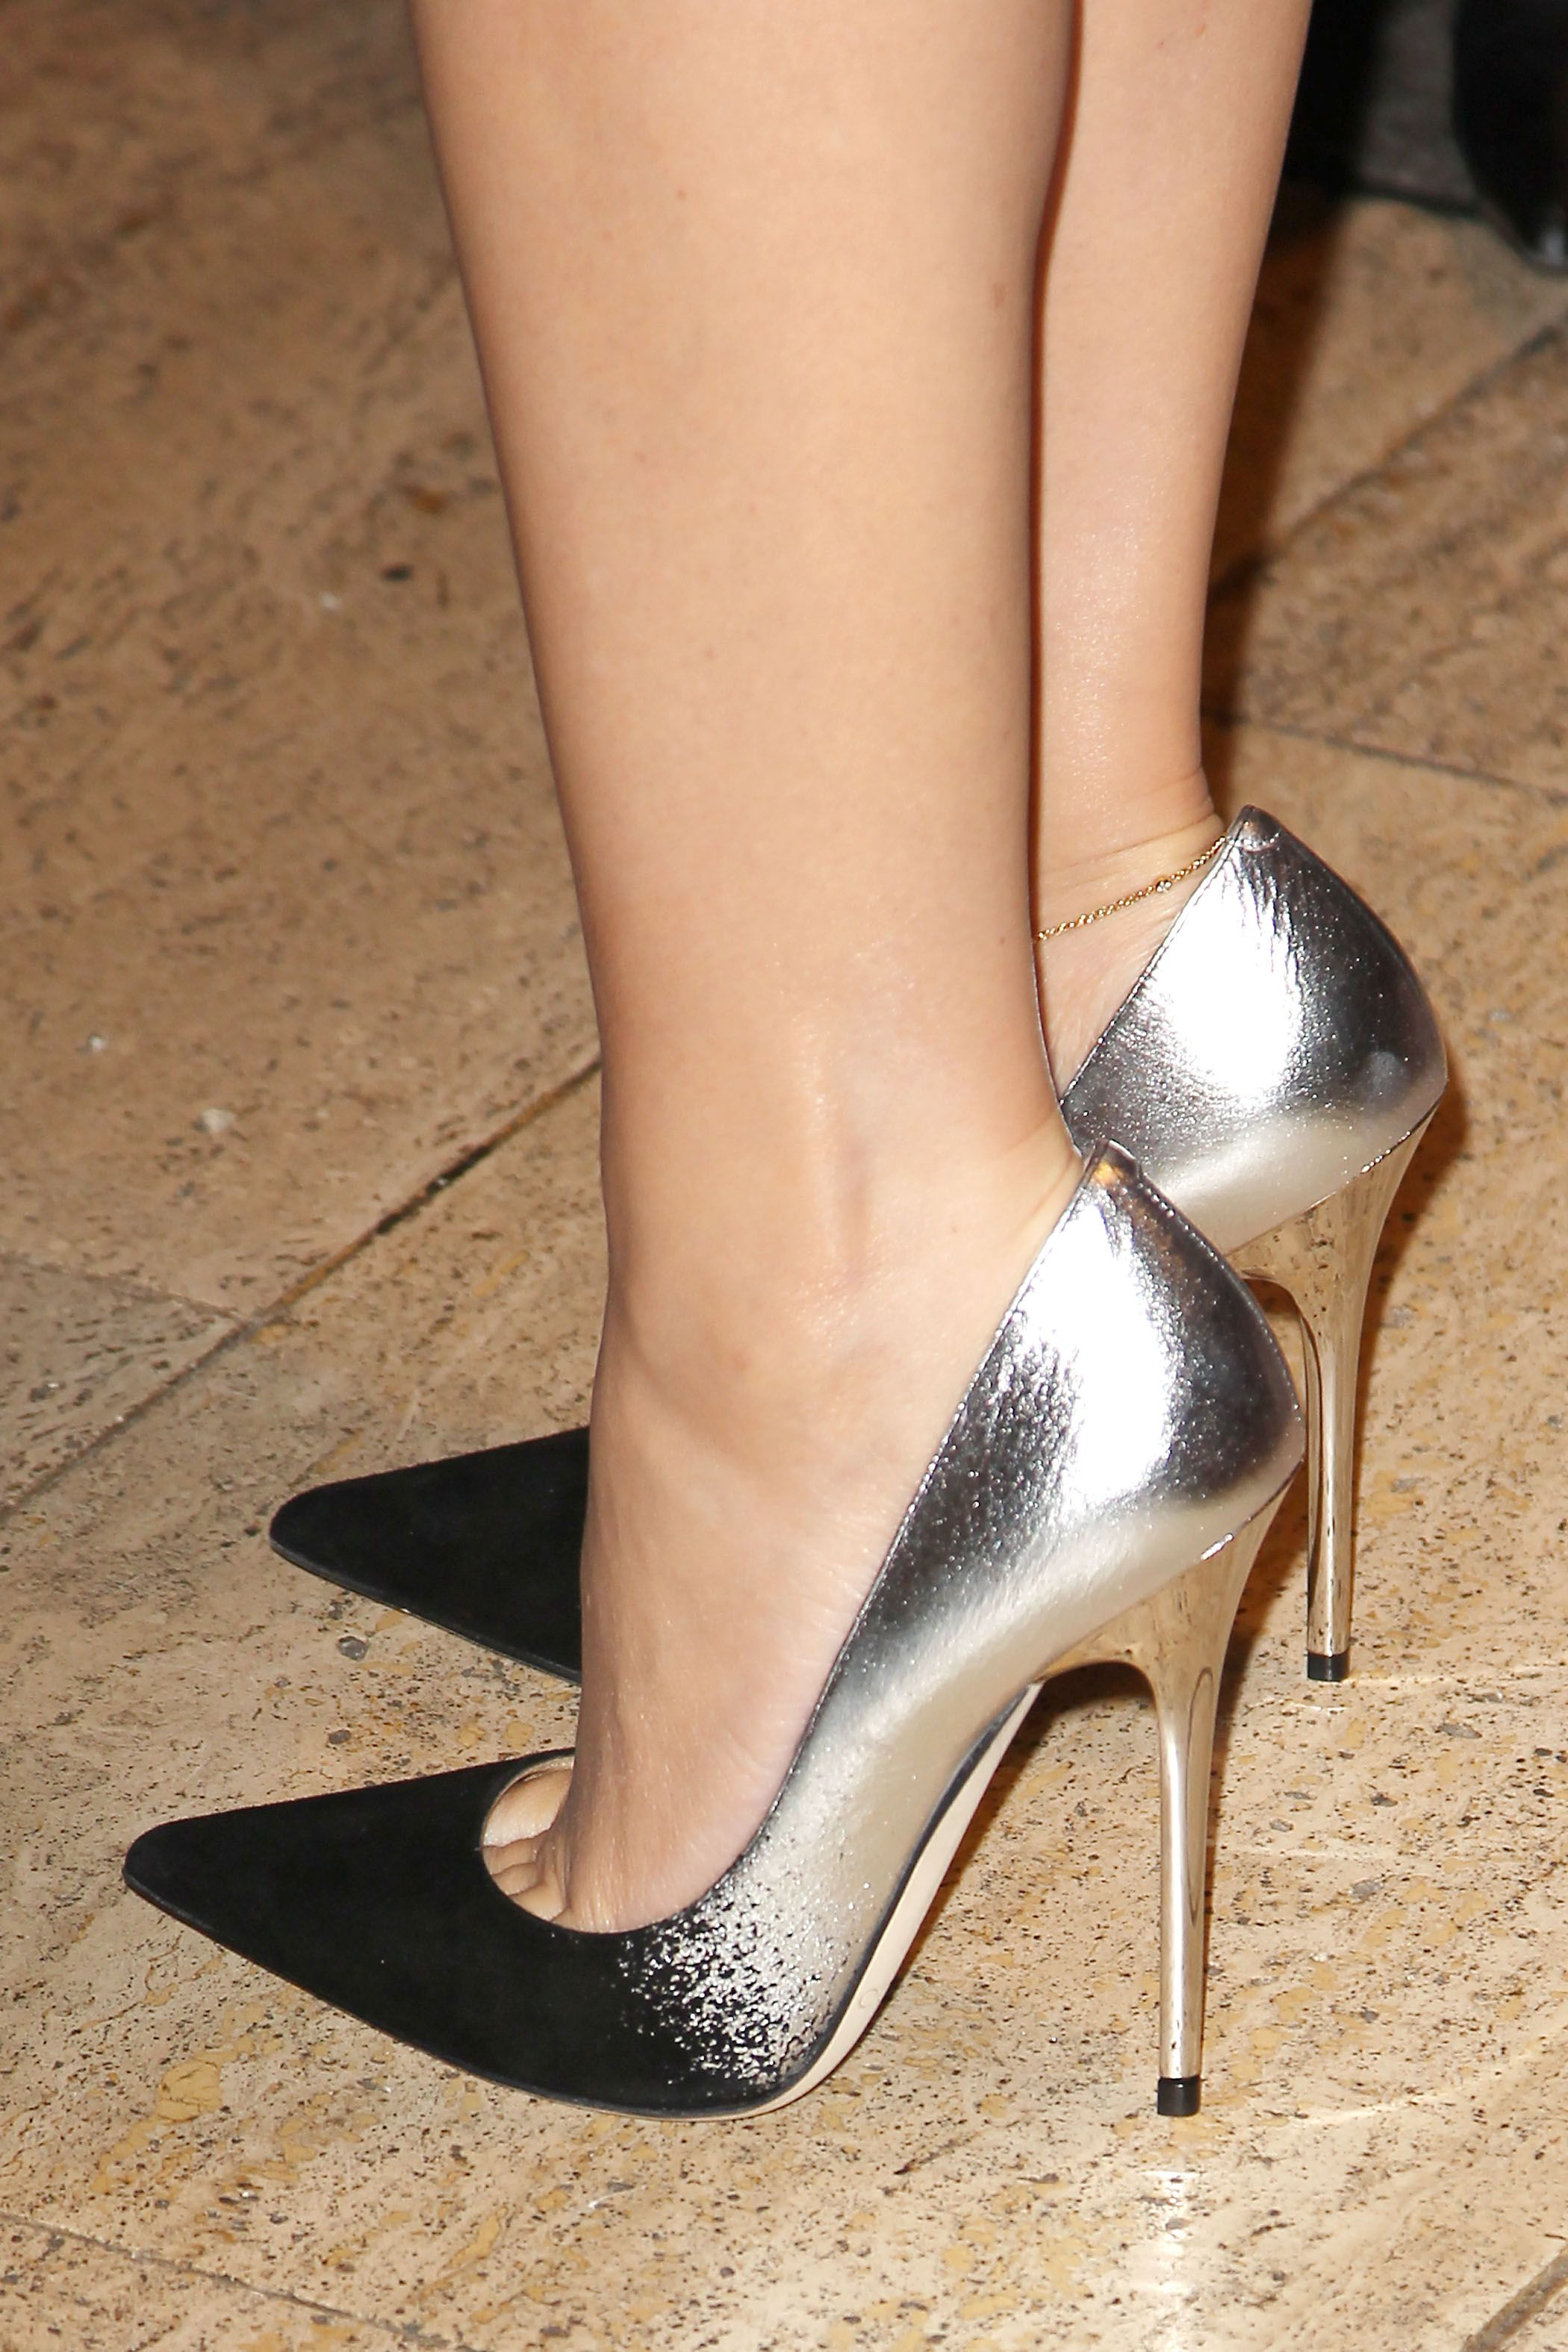 7906d8c3870b2 jimmy choo anouk pumps in black silver on the feet of kylie minogue.   shoeporn